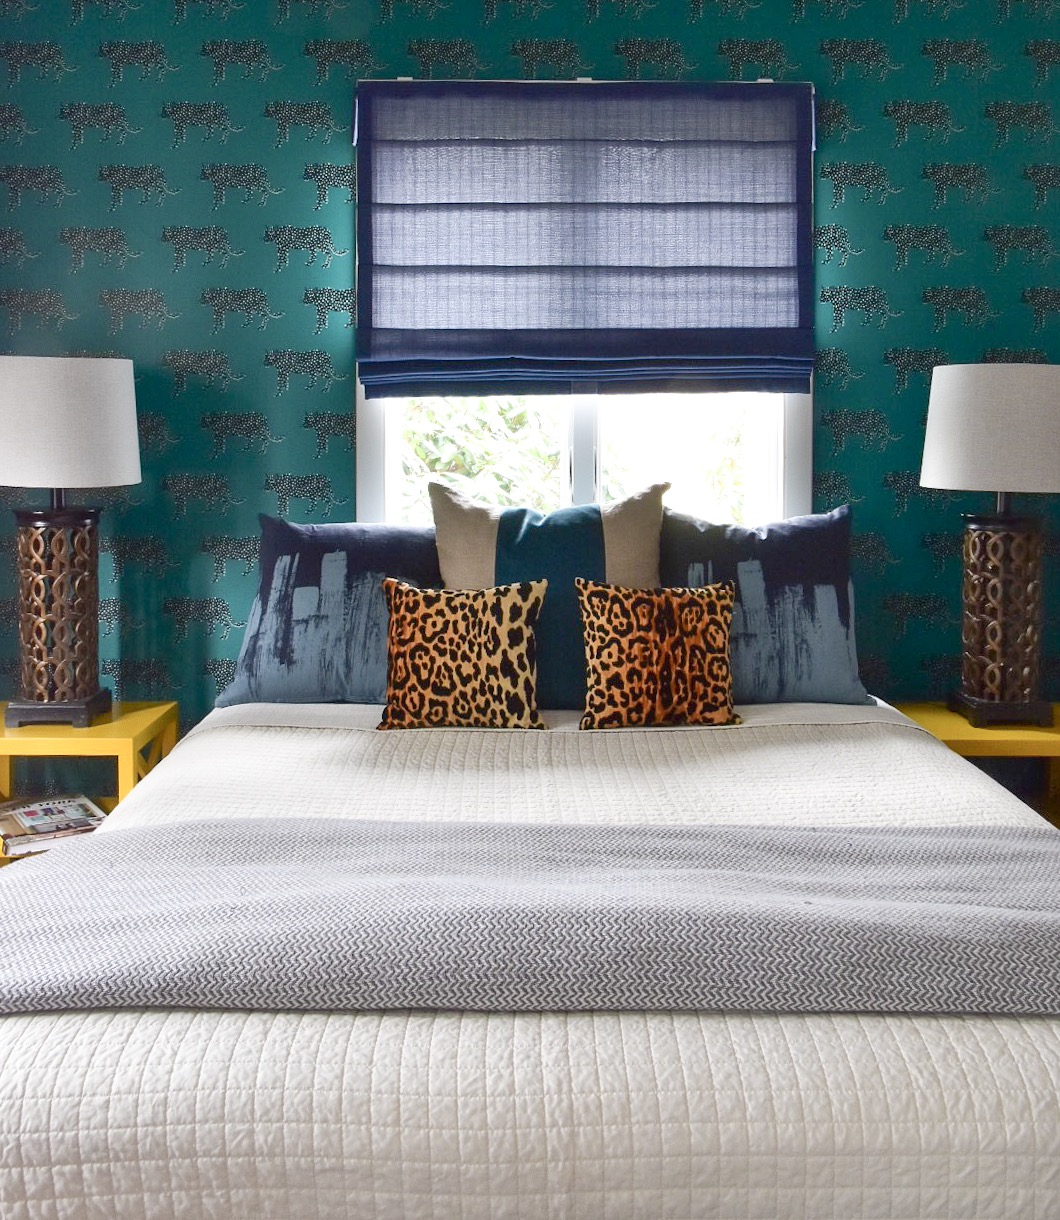 Global Guest Room with removable wallpaper designed by the Rath Project